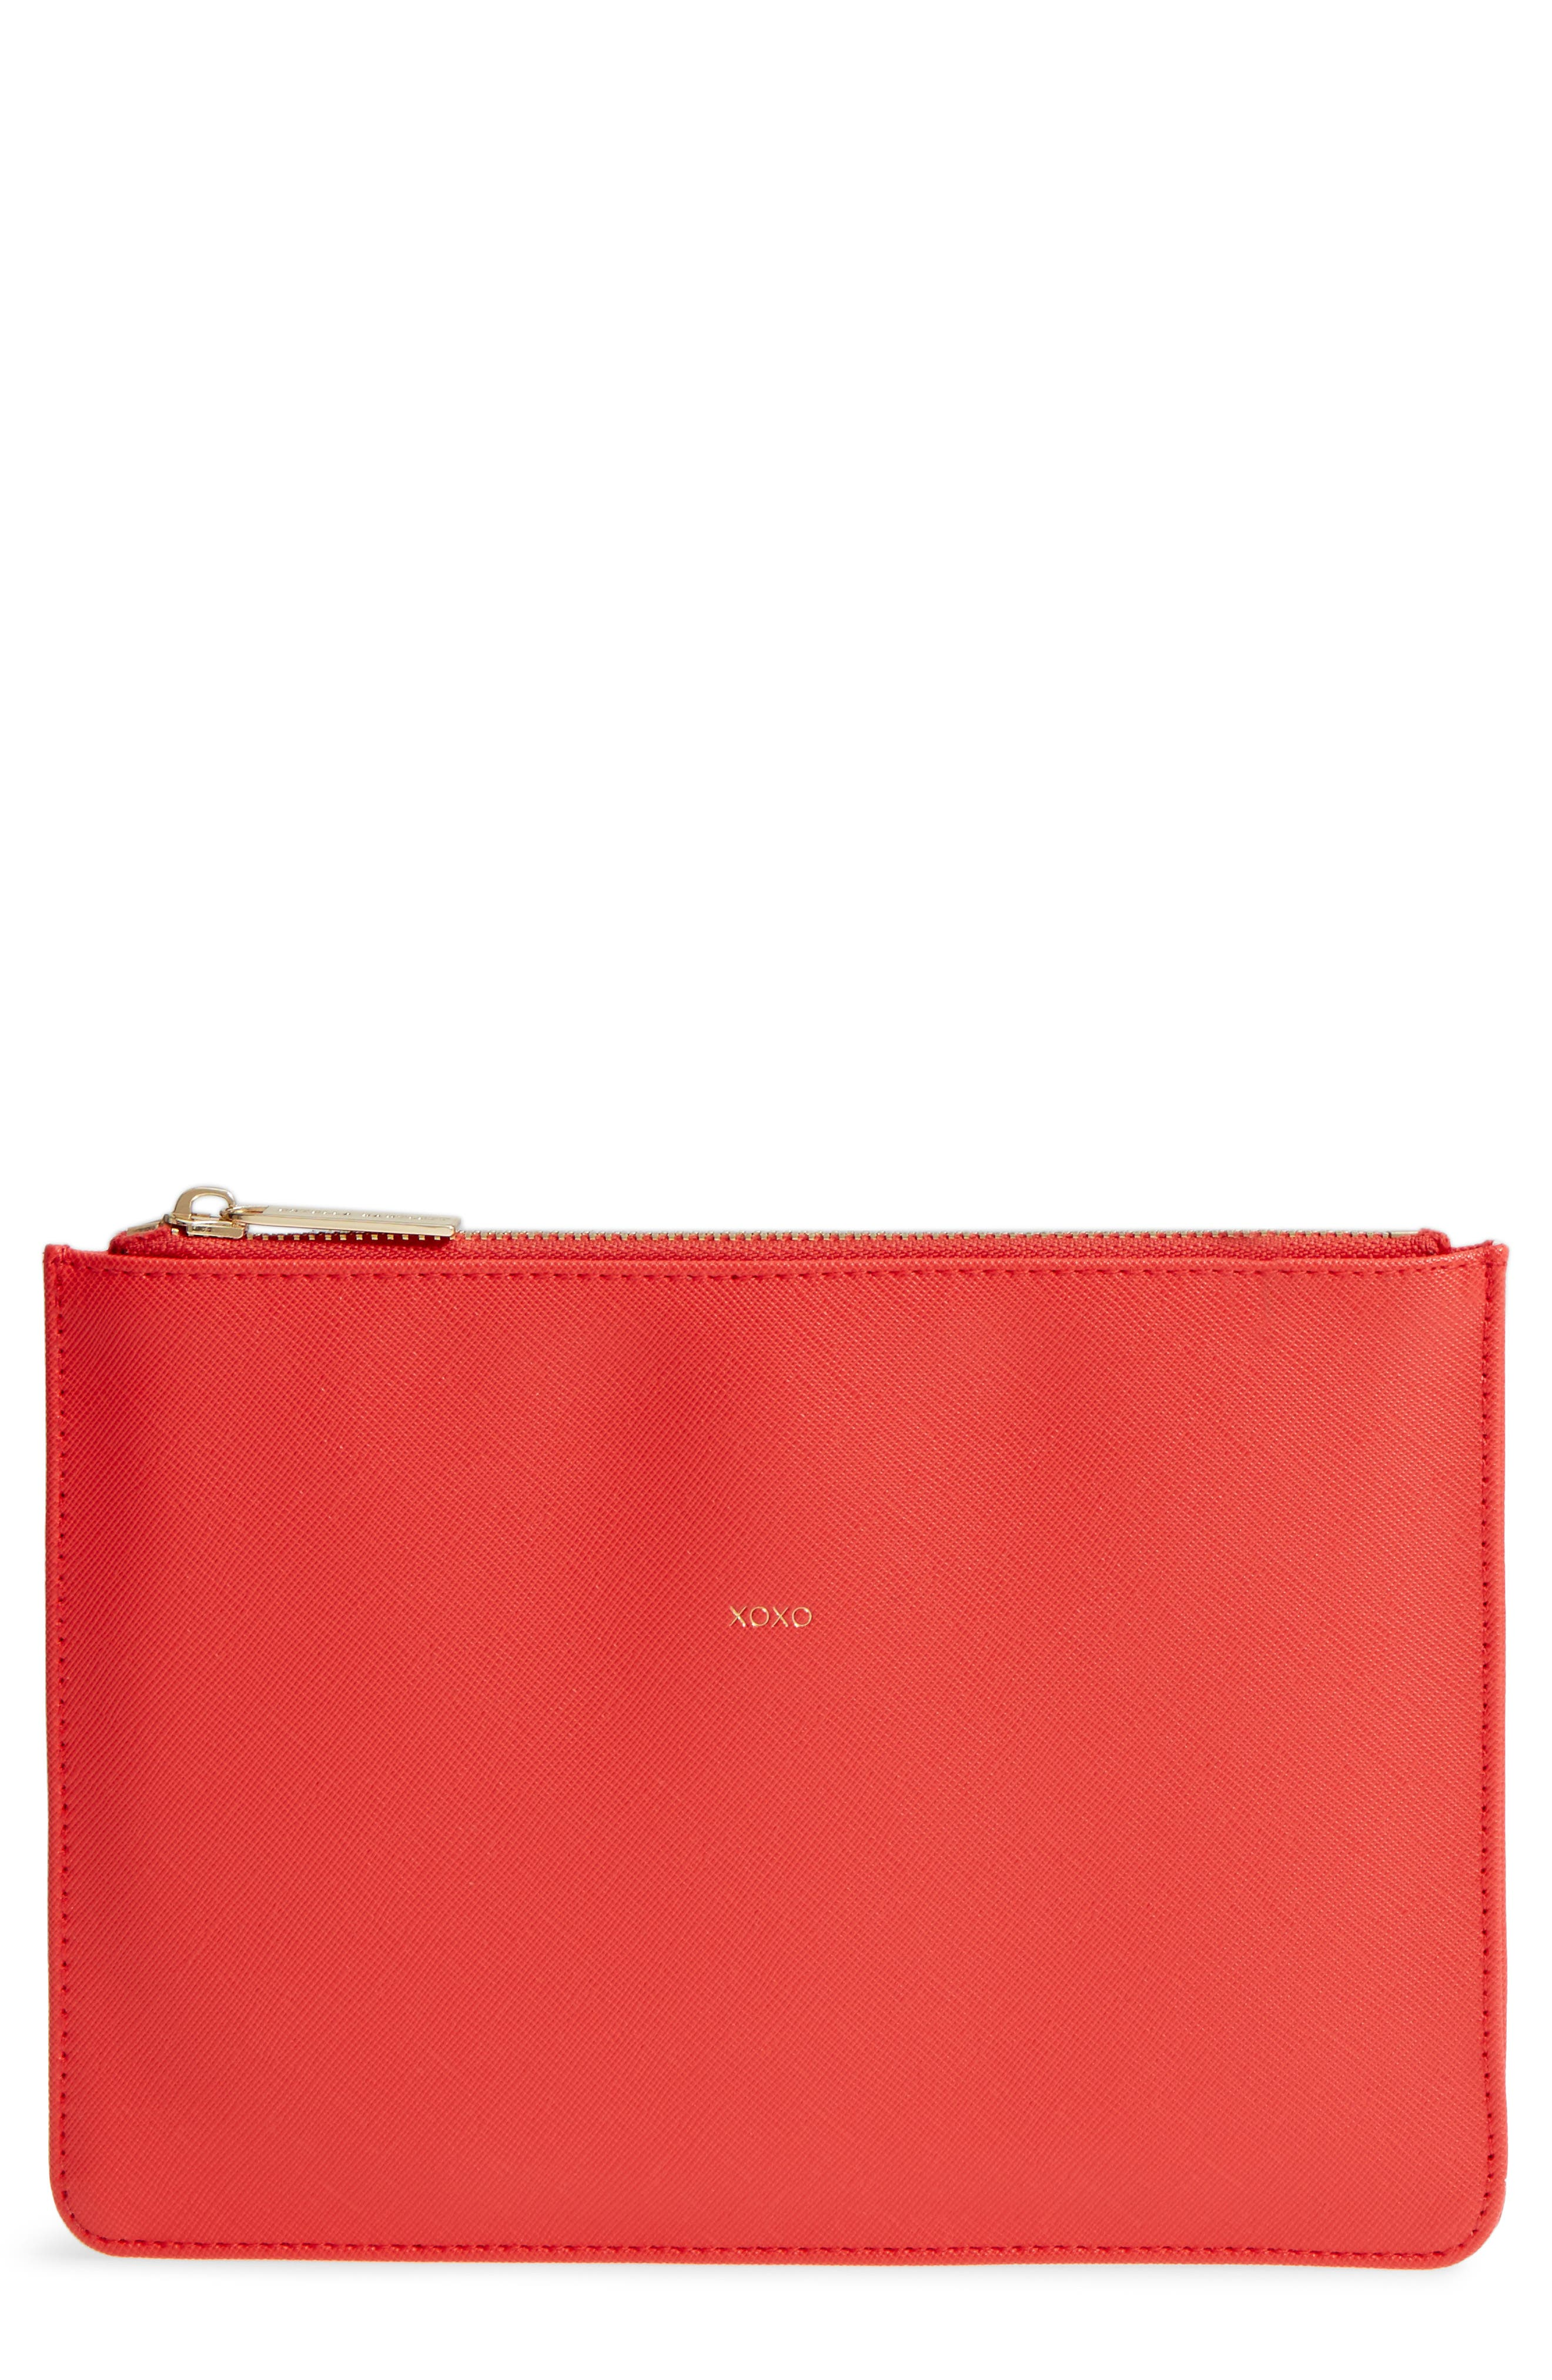 XOXO Medium Faux Leather Pouch,                             Main thumbnail 1, color,                             Red